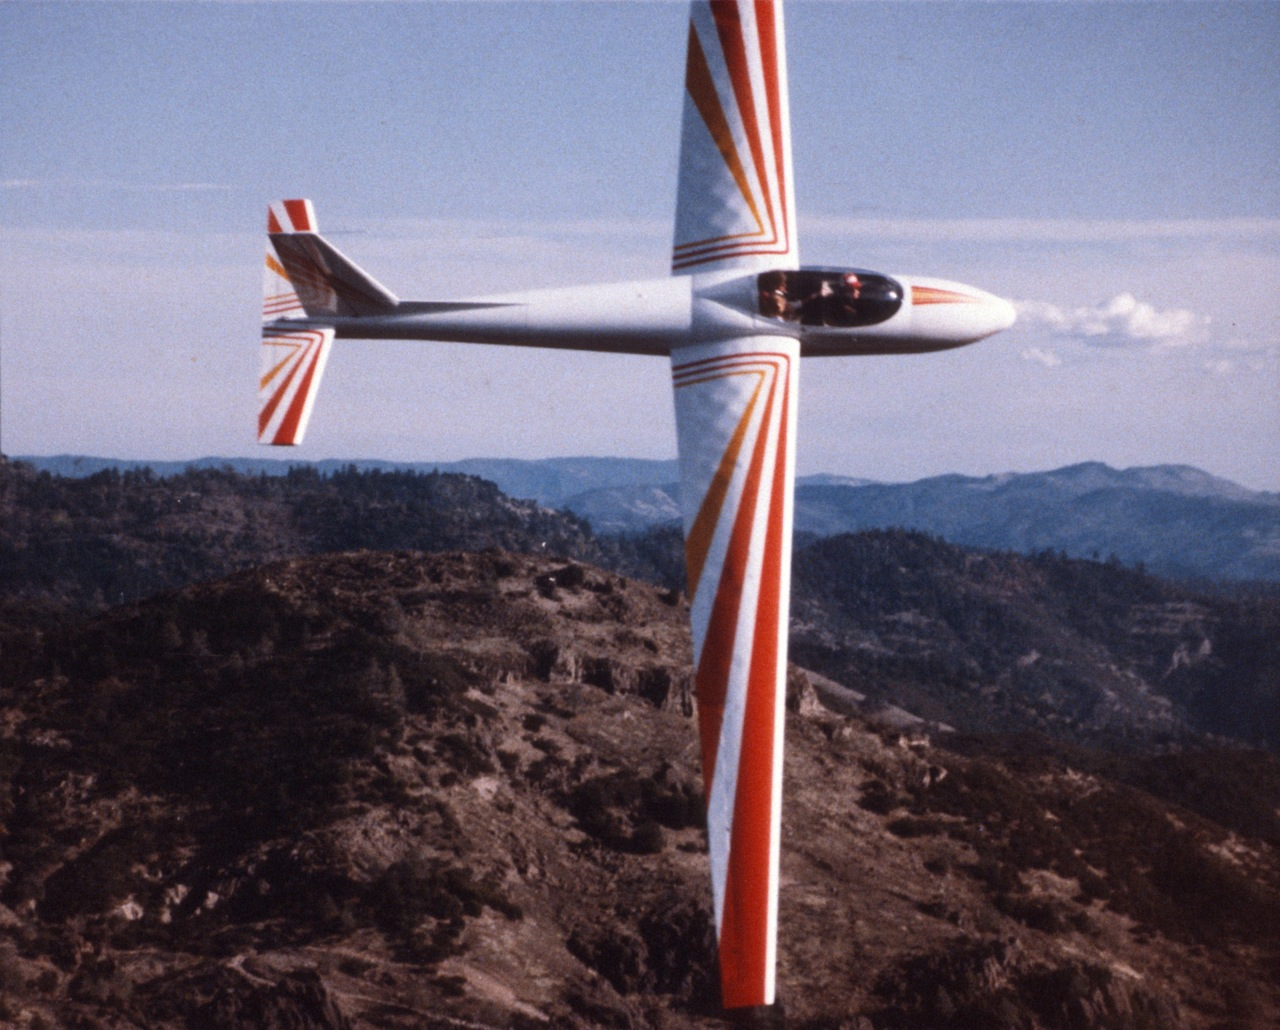 Photo shows shell buckling glider wings while glider makes hard banked turn